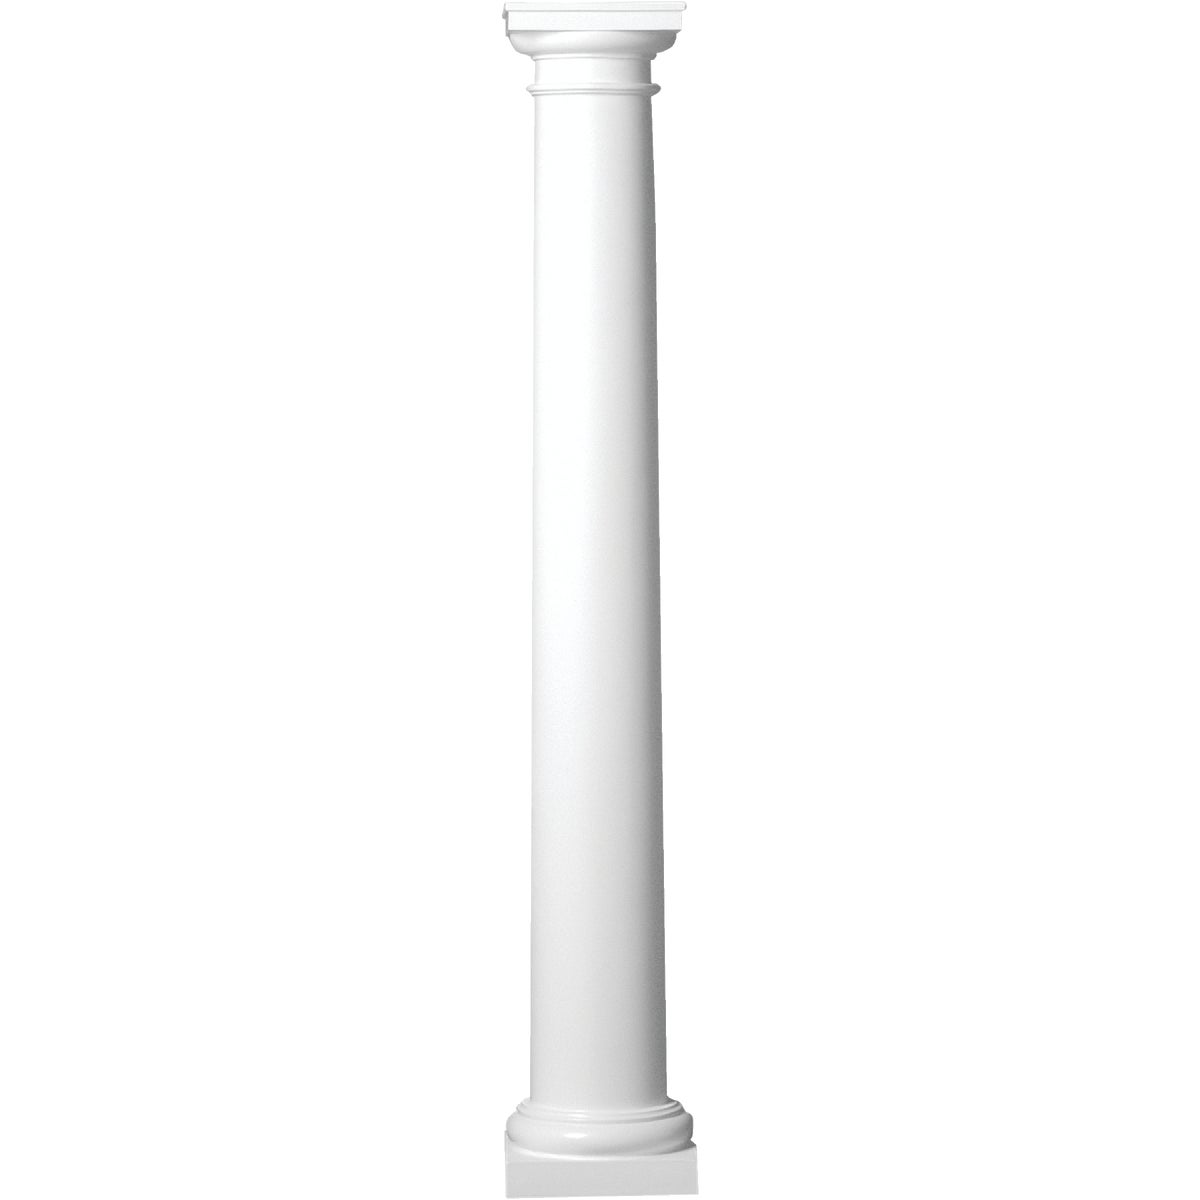 "8""X10' COLUMN RND F/G - 70010810PL by DIXIE PACIFIC"